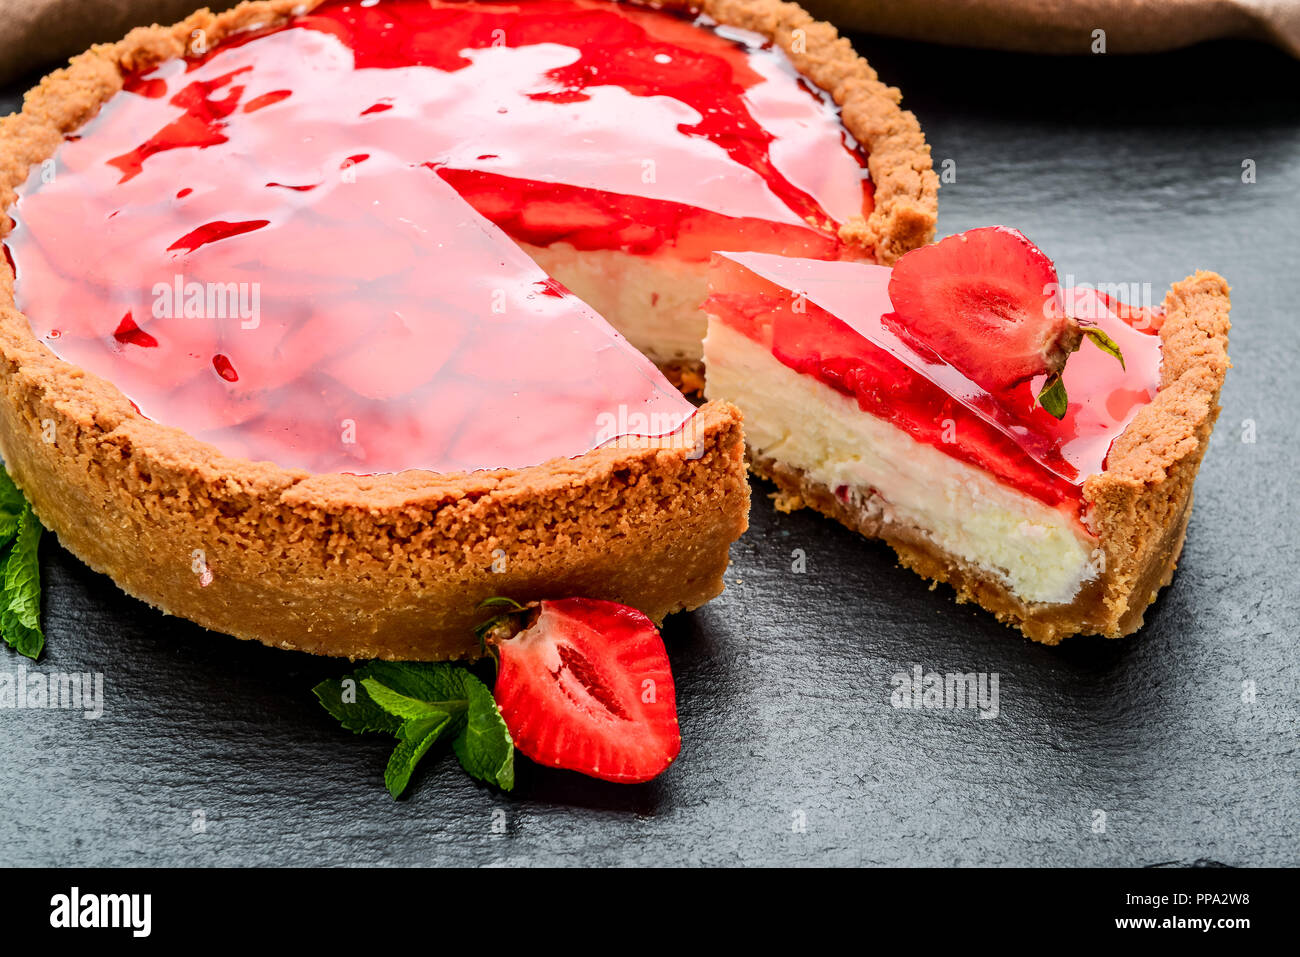 Cold cheesecake with strawberry and strawberry jelly. - Stock Image